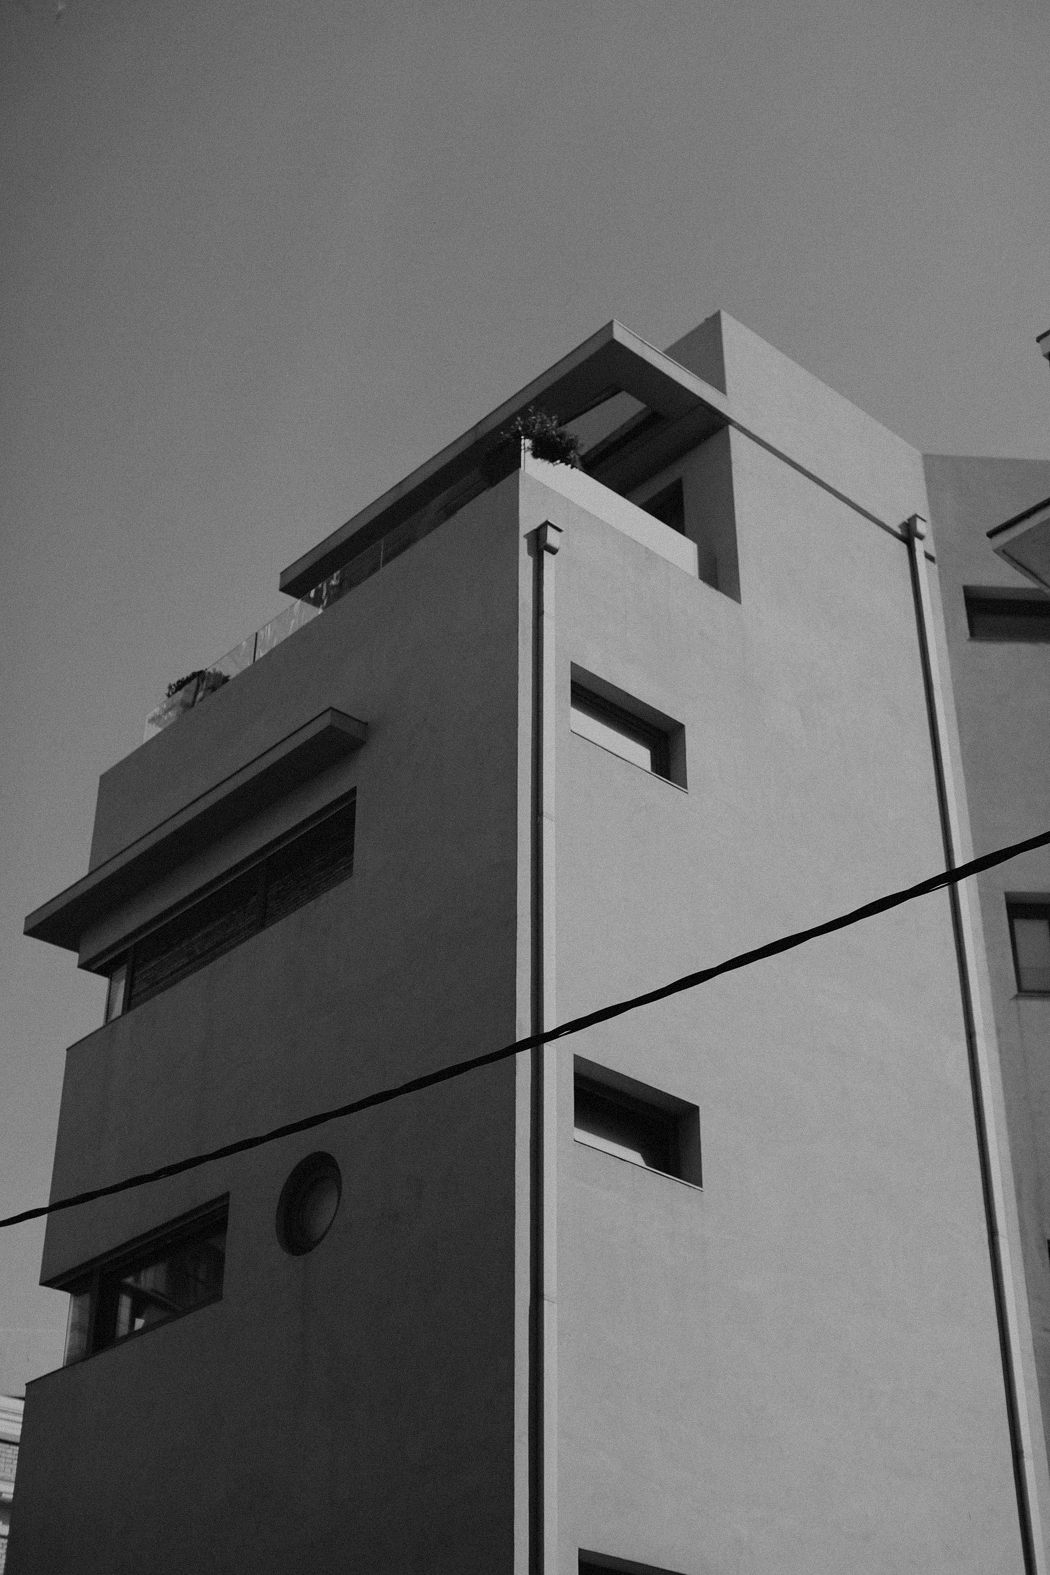 BAUHAUS Architecture Tel Aviv, Israel - A visual guide by Fiona Dinkelbach